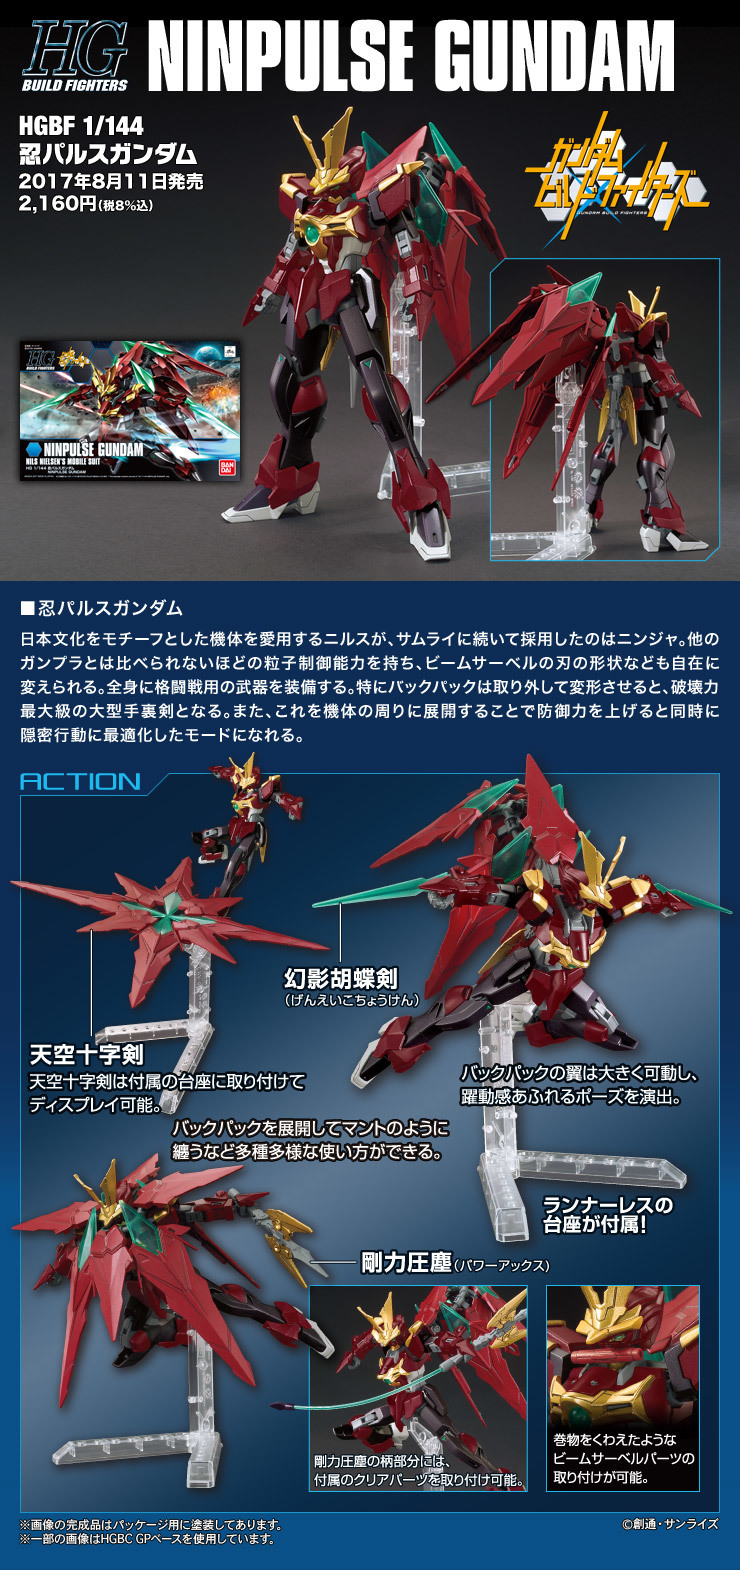 HGBF 1/144 NINPULSE GUNDAM (Nils Nielsen's Mobile Suit): SAMPLE REVIEW and FULL INSTRUCTIONS MANUAL SCANS, Info Release